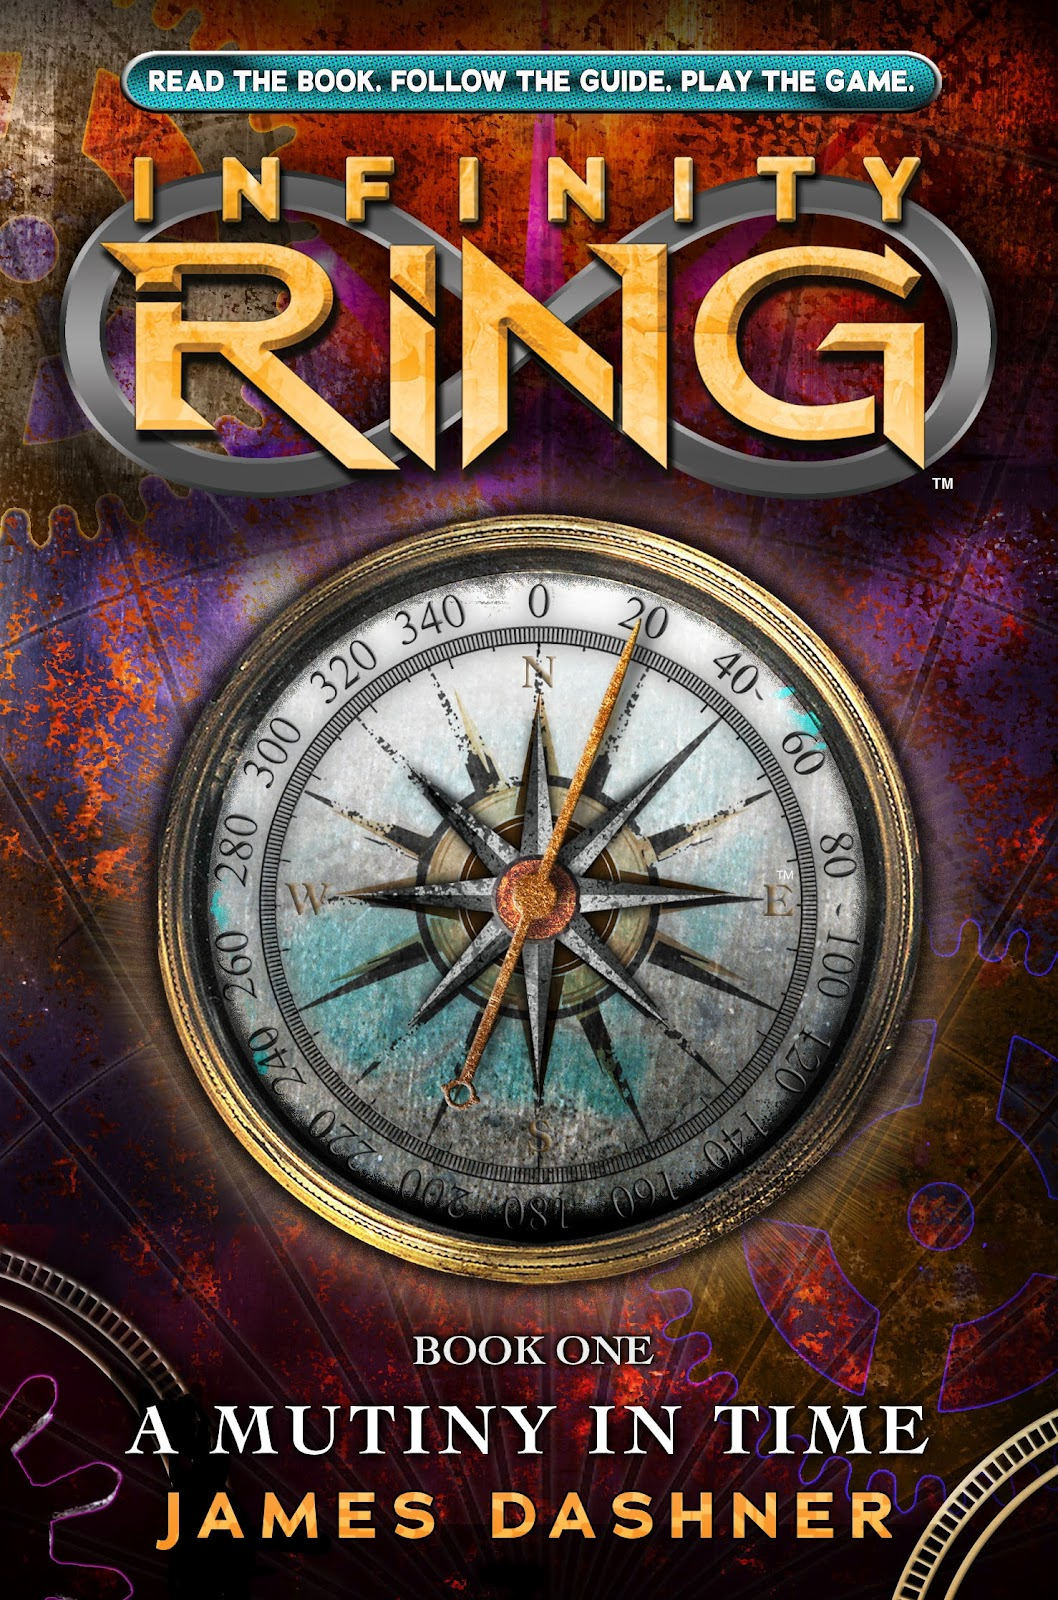 To acquire Ring infinity book series picture trends